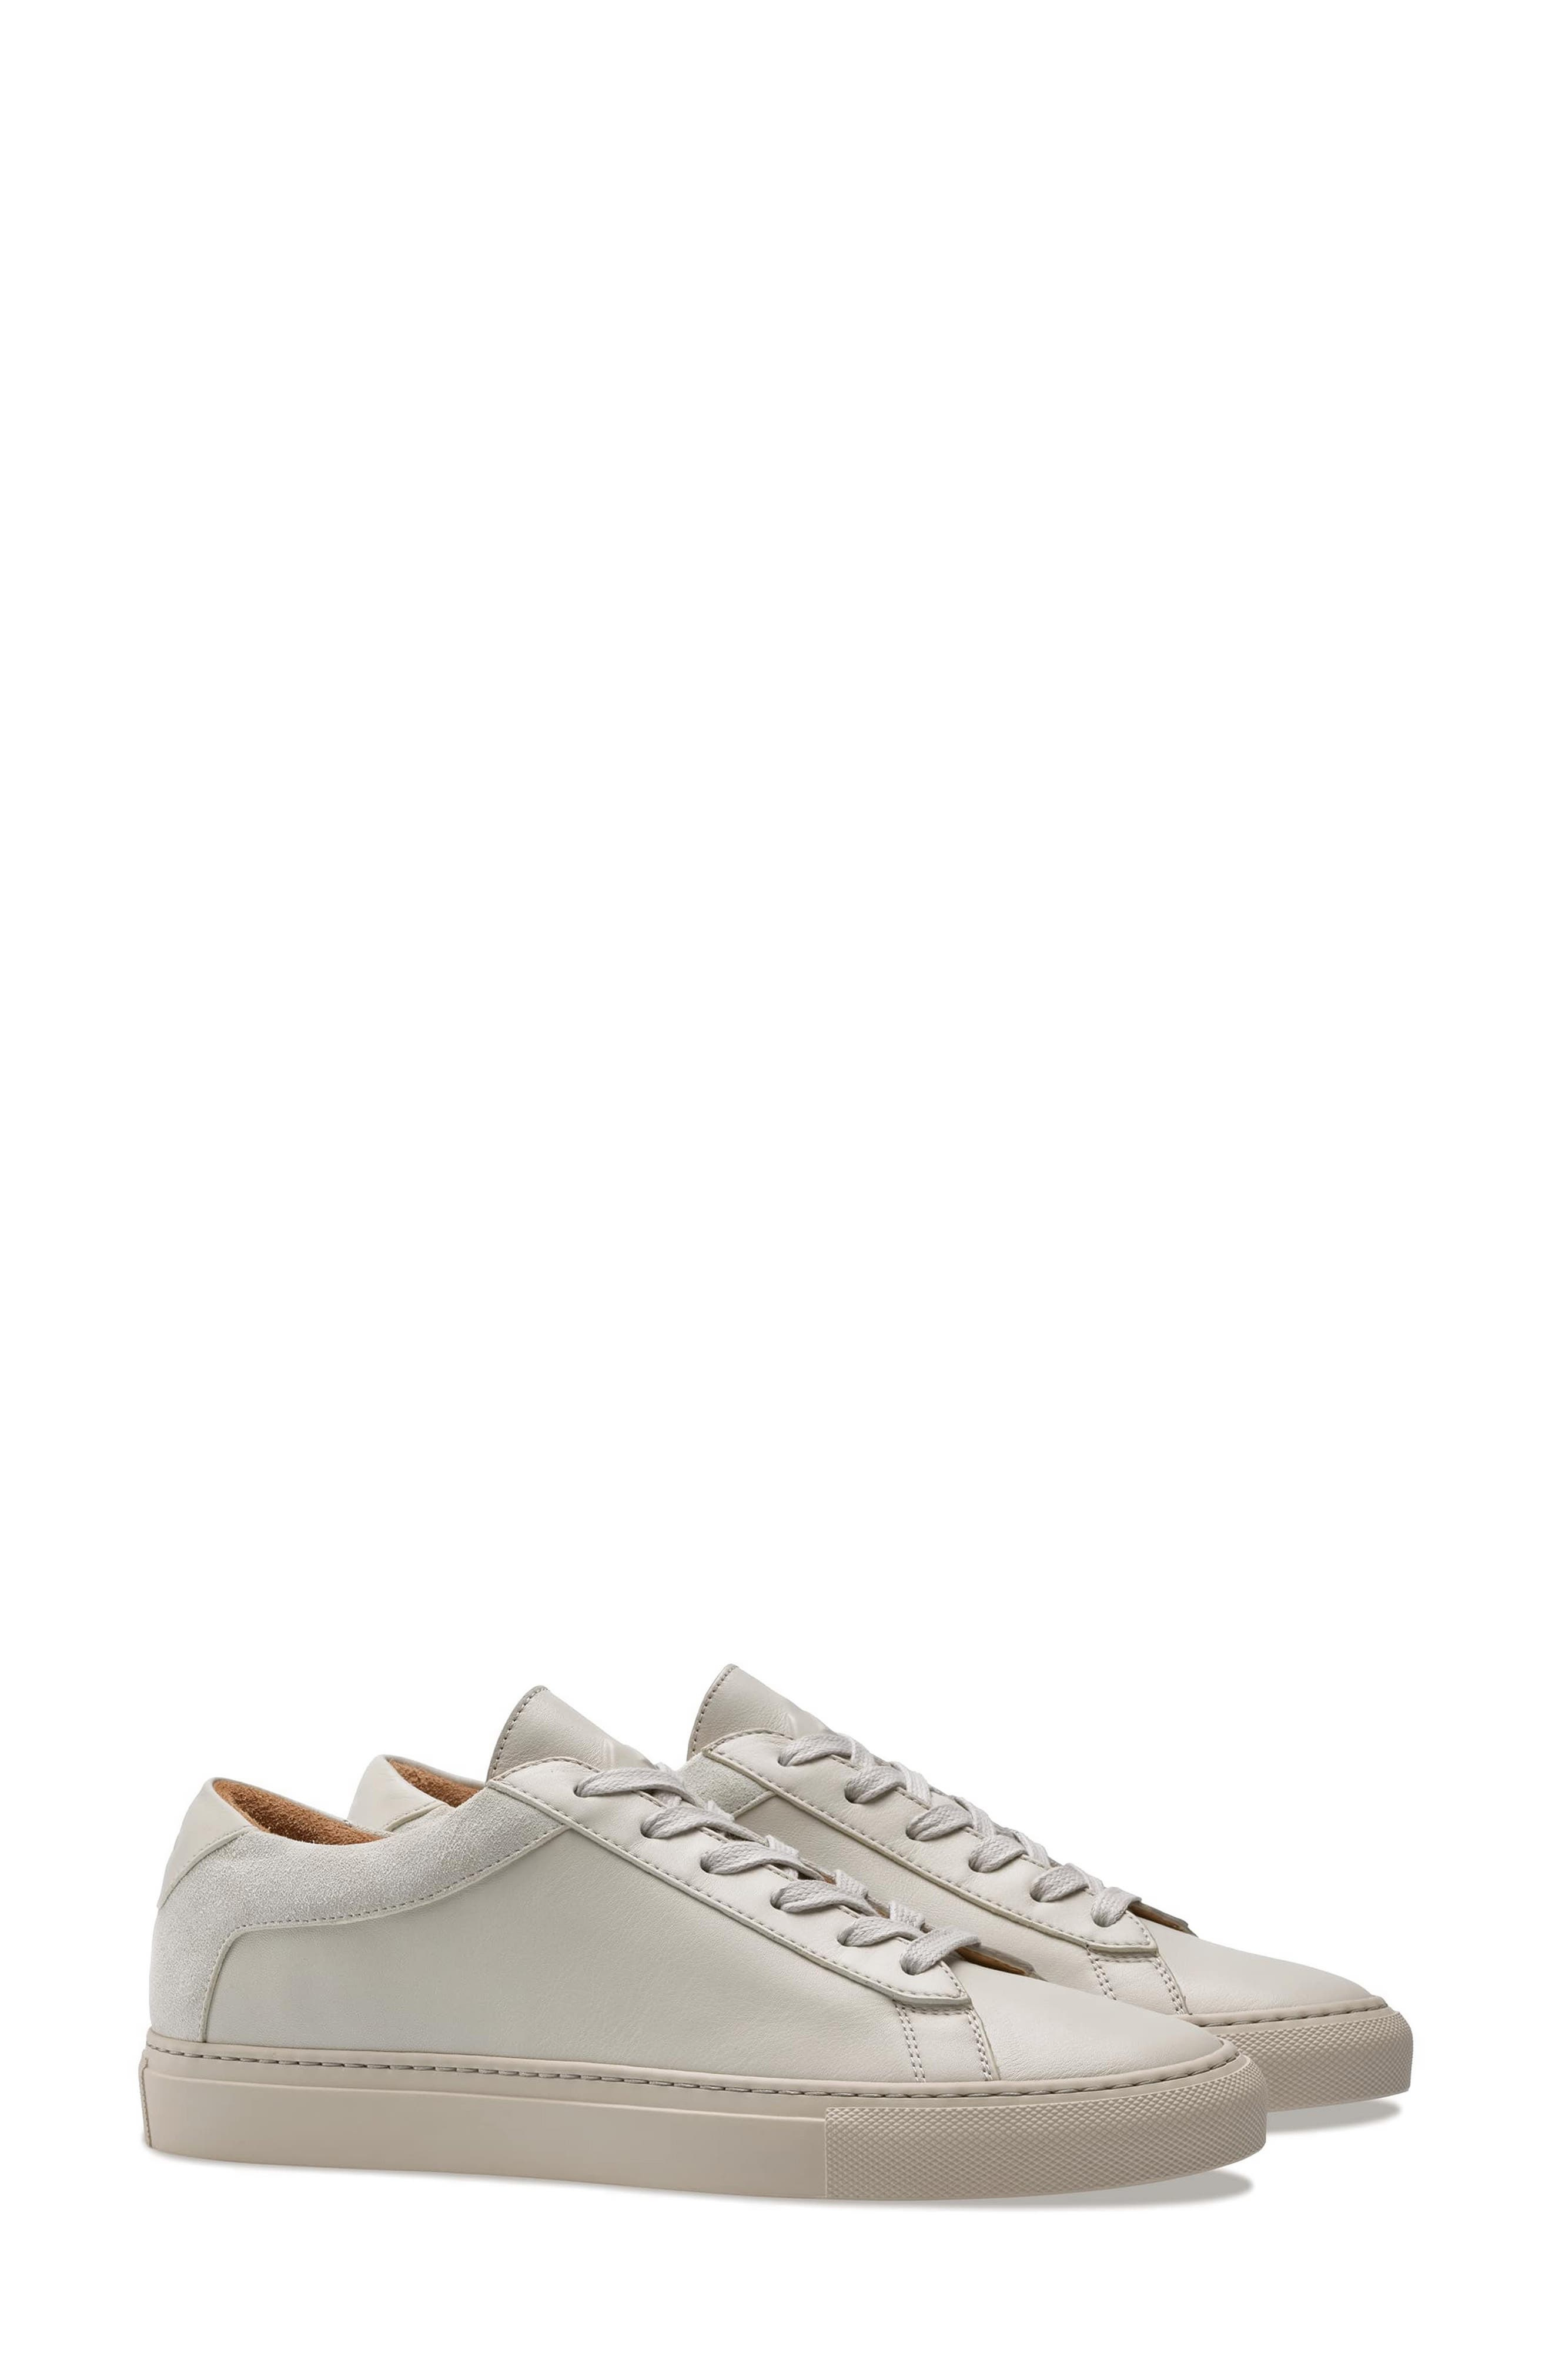 Men's Offwhite Shoes   Nordstrom